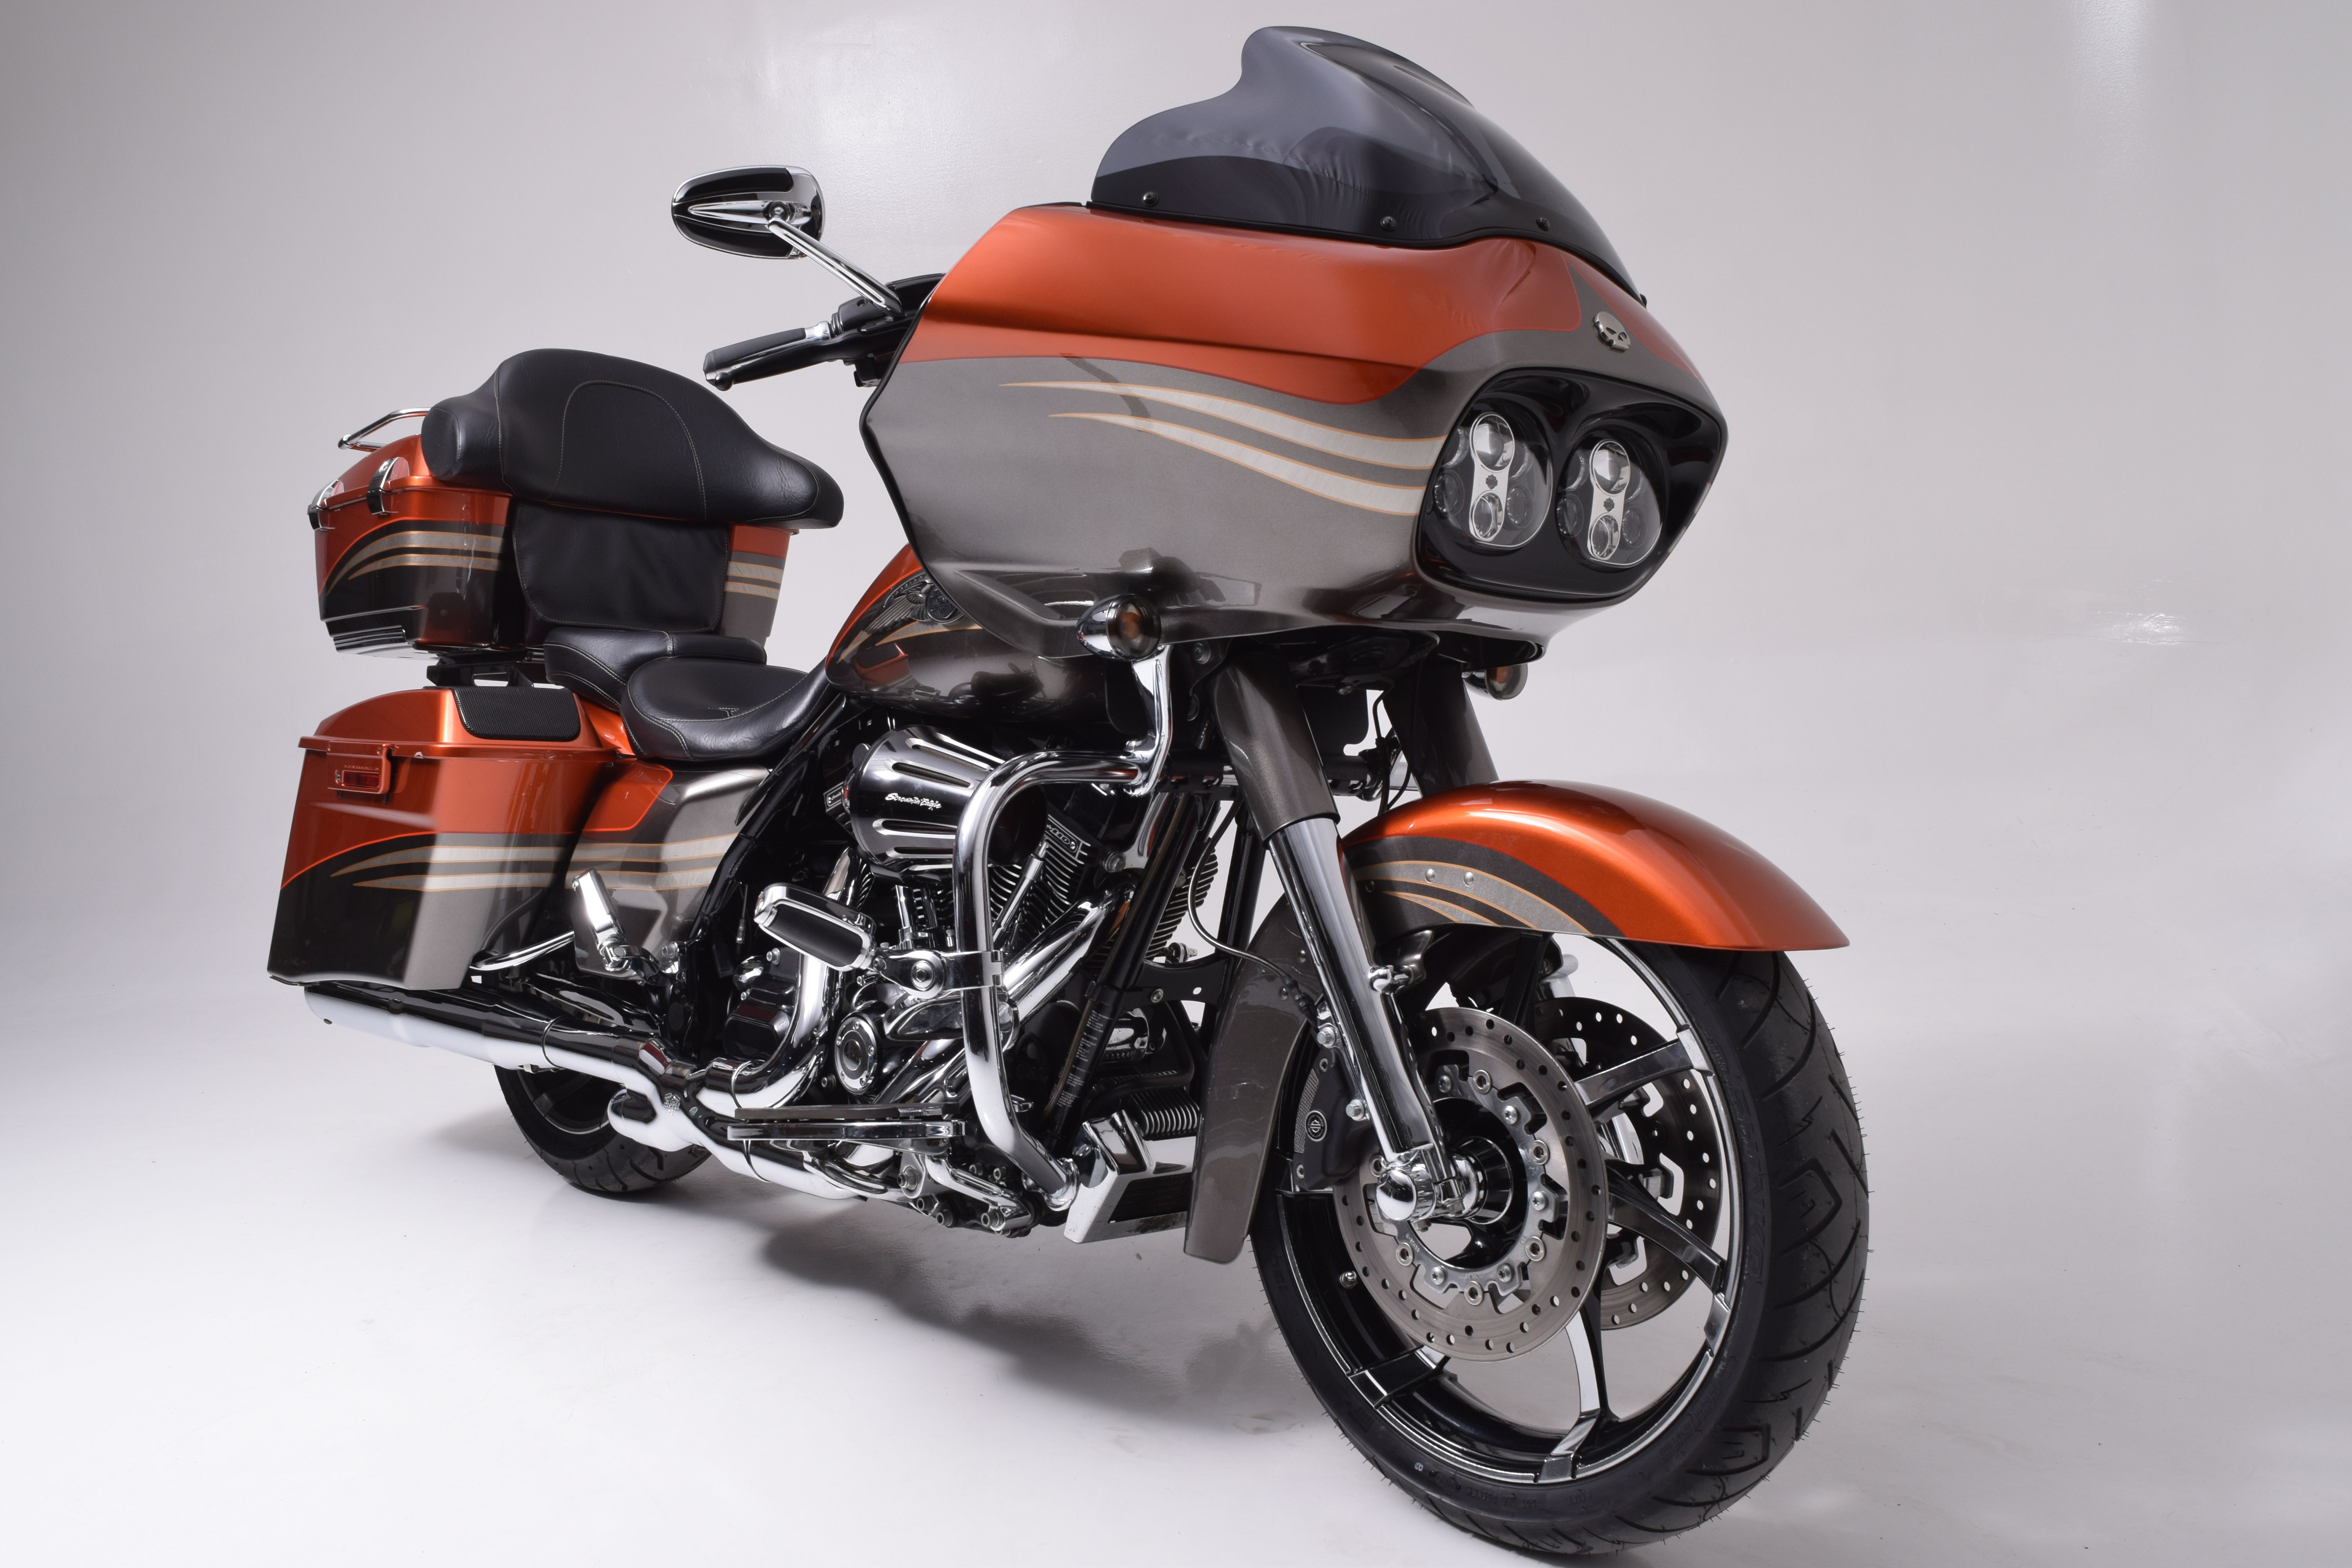 Pre-Owned 2013 Harley-Davidson FLTRXSE2 Touring CVO Road Glide Custom